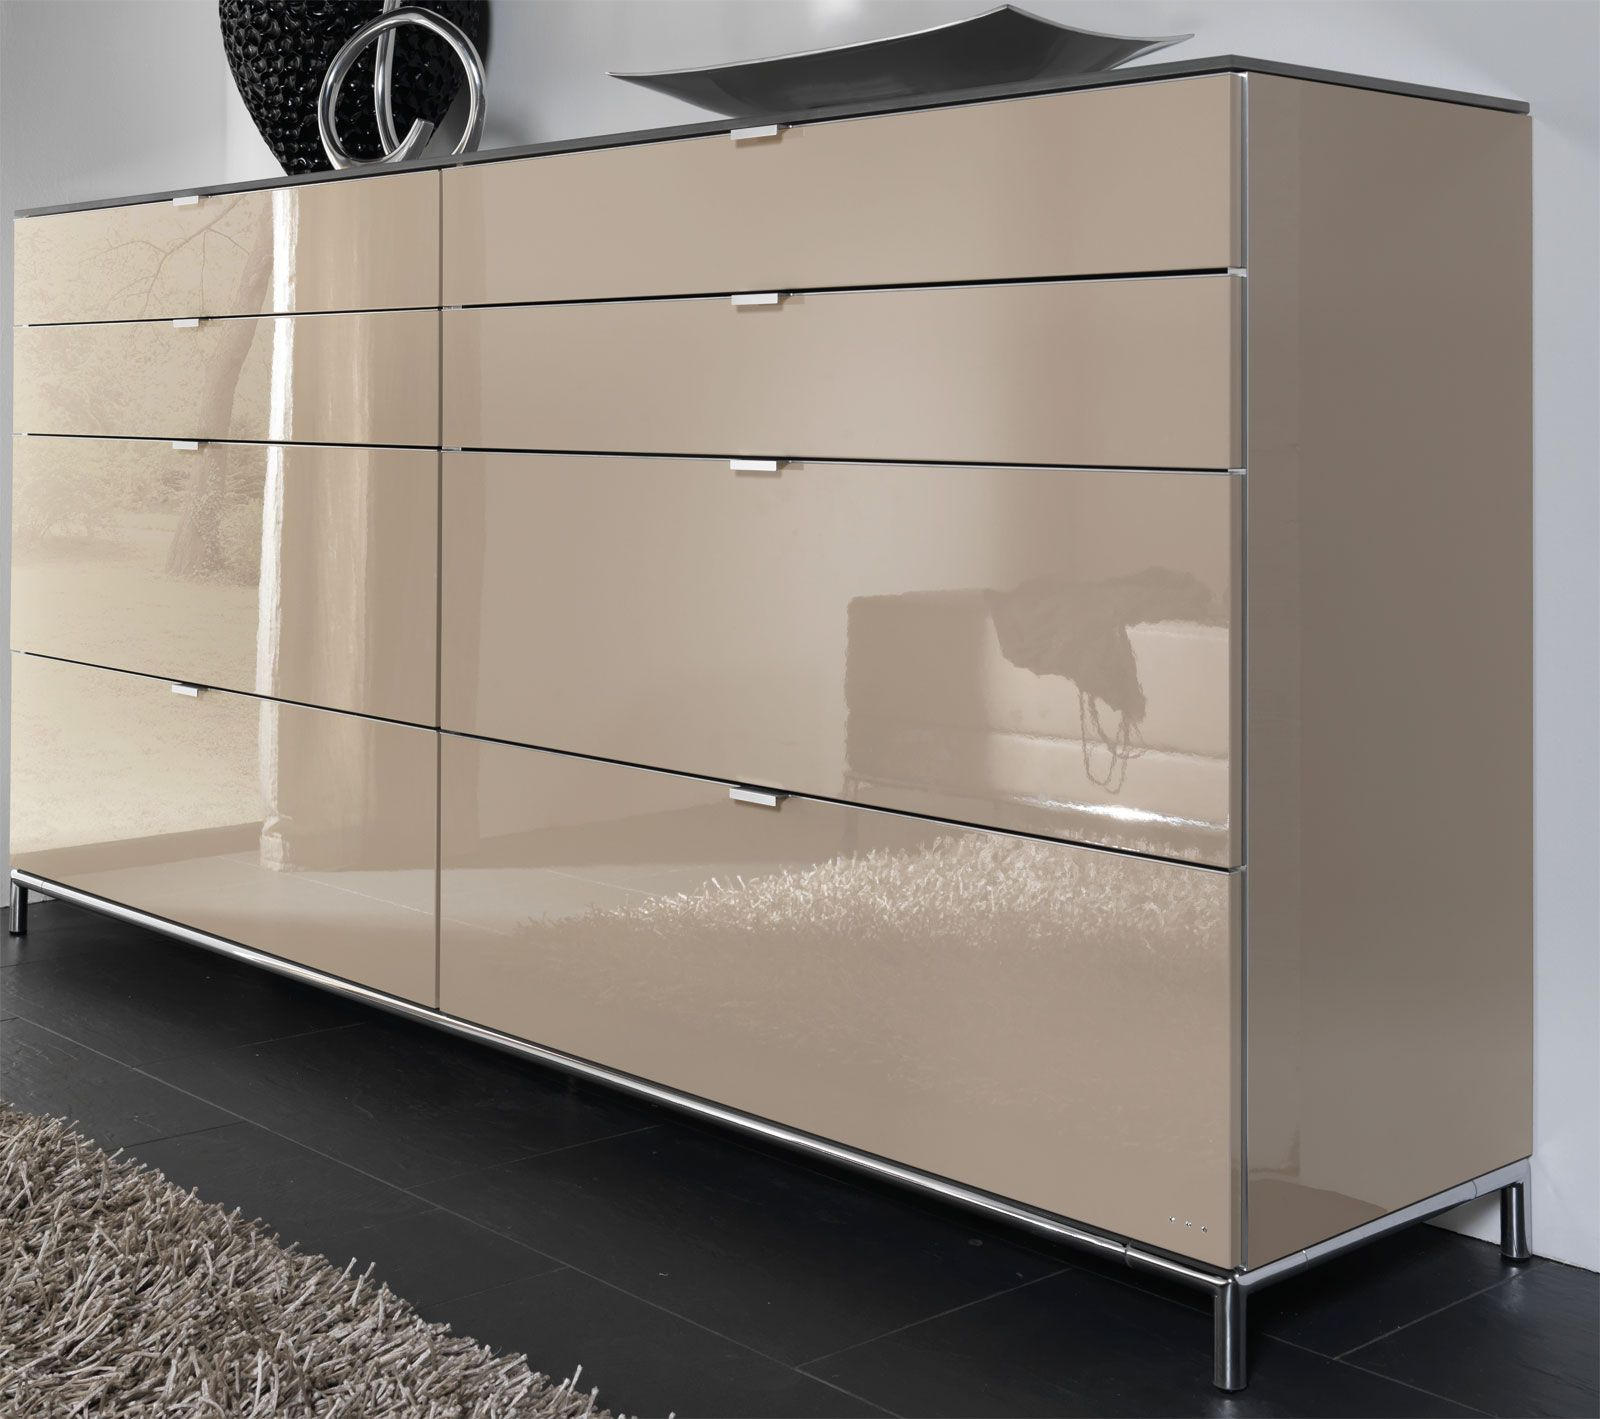 72 Beeindruckend Schlafzimmer Kommoden Mit Schubladen Check More At Https Www Tomaszsikora Net Schlafzimmer Kommoden Mi Stair Storage Home Goods Room Divider